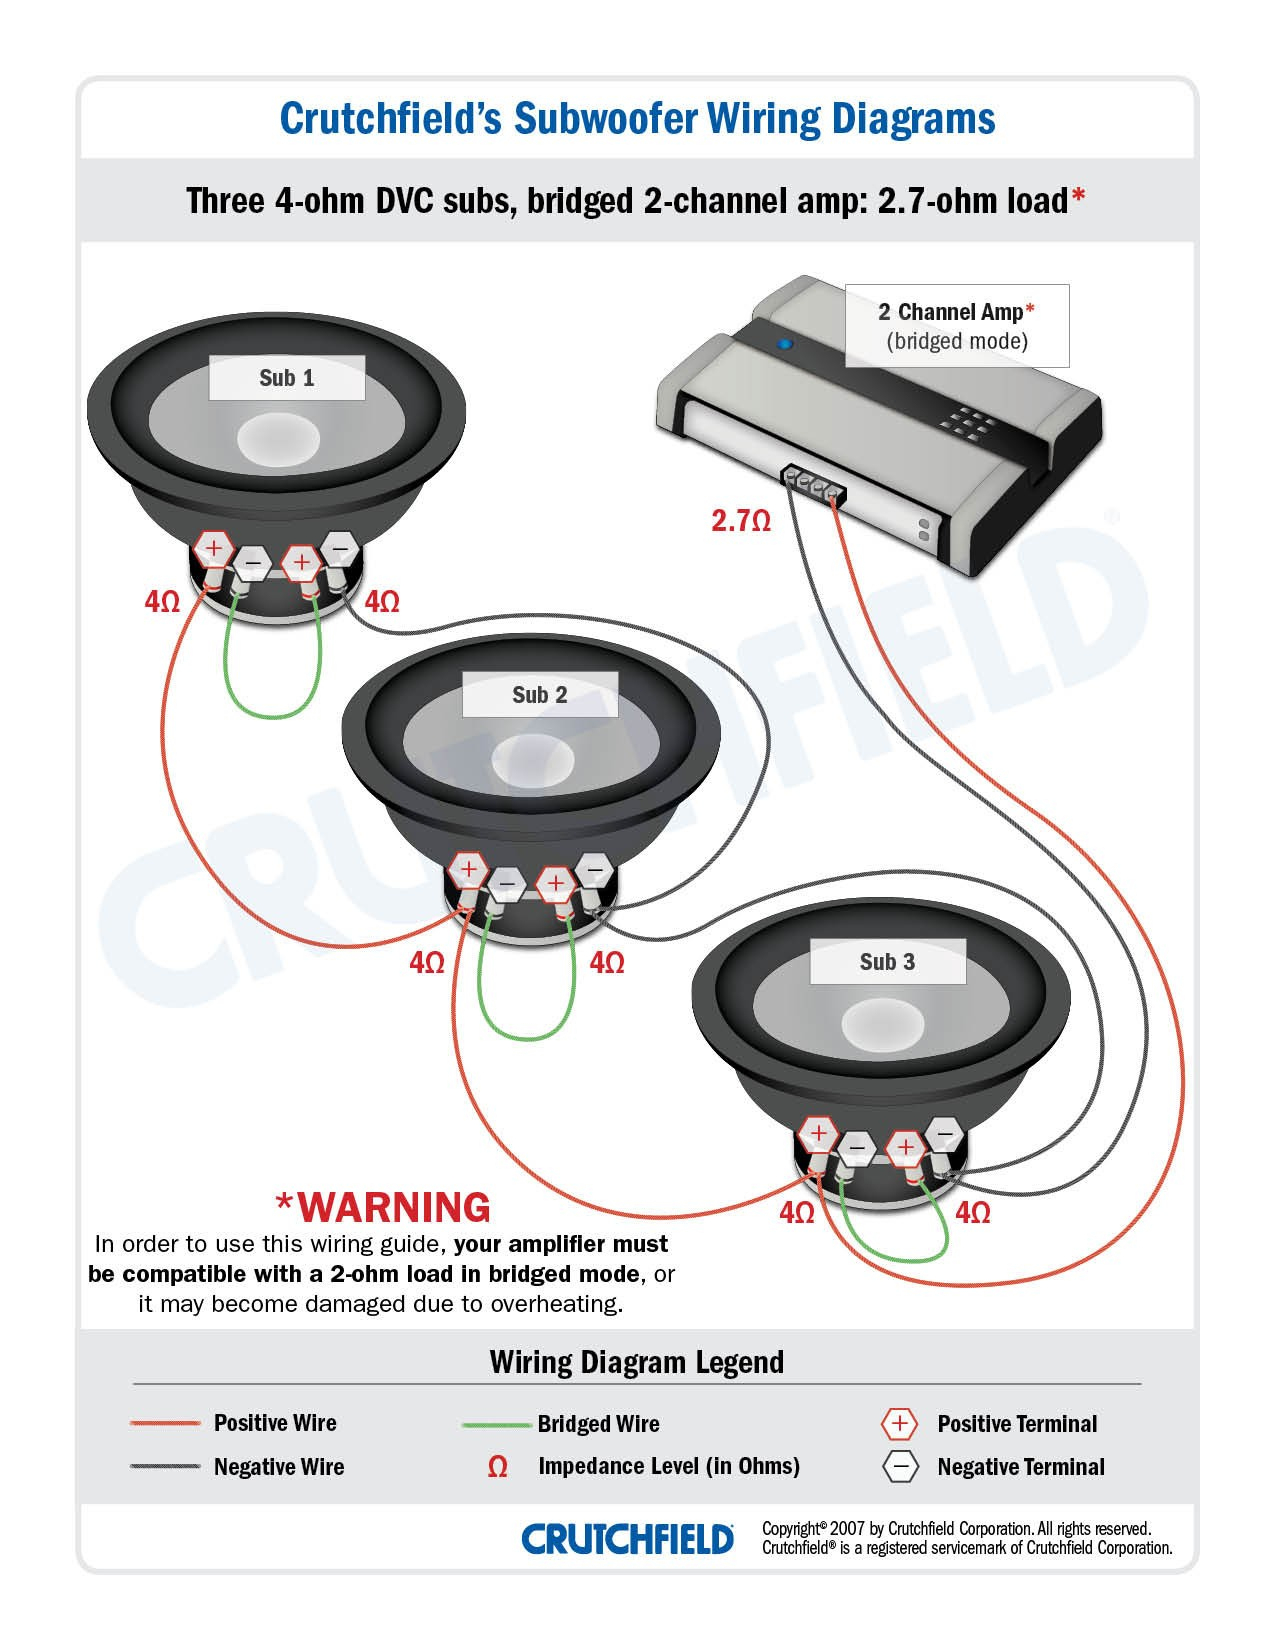 Subwoofer Wiring Diagrams Dual Voice Coil | Wiring Diagram - Dual Voice Coil Wiring Diagram